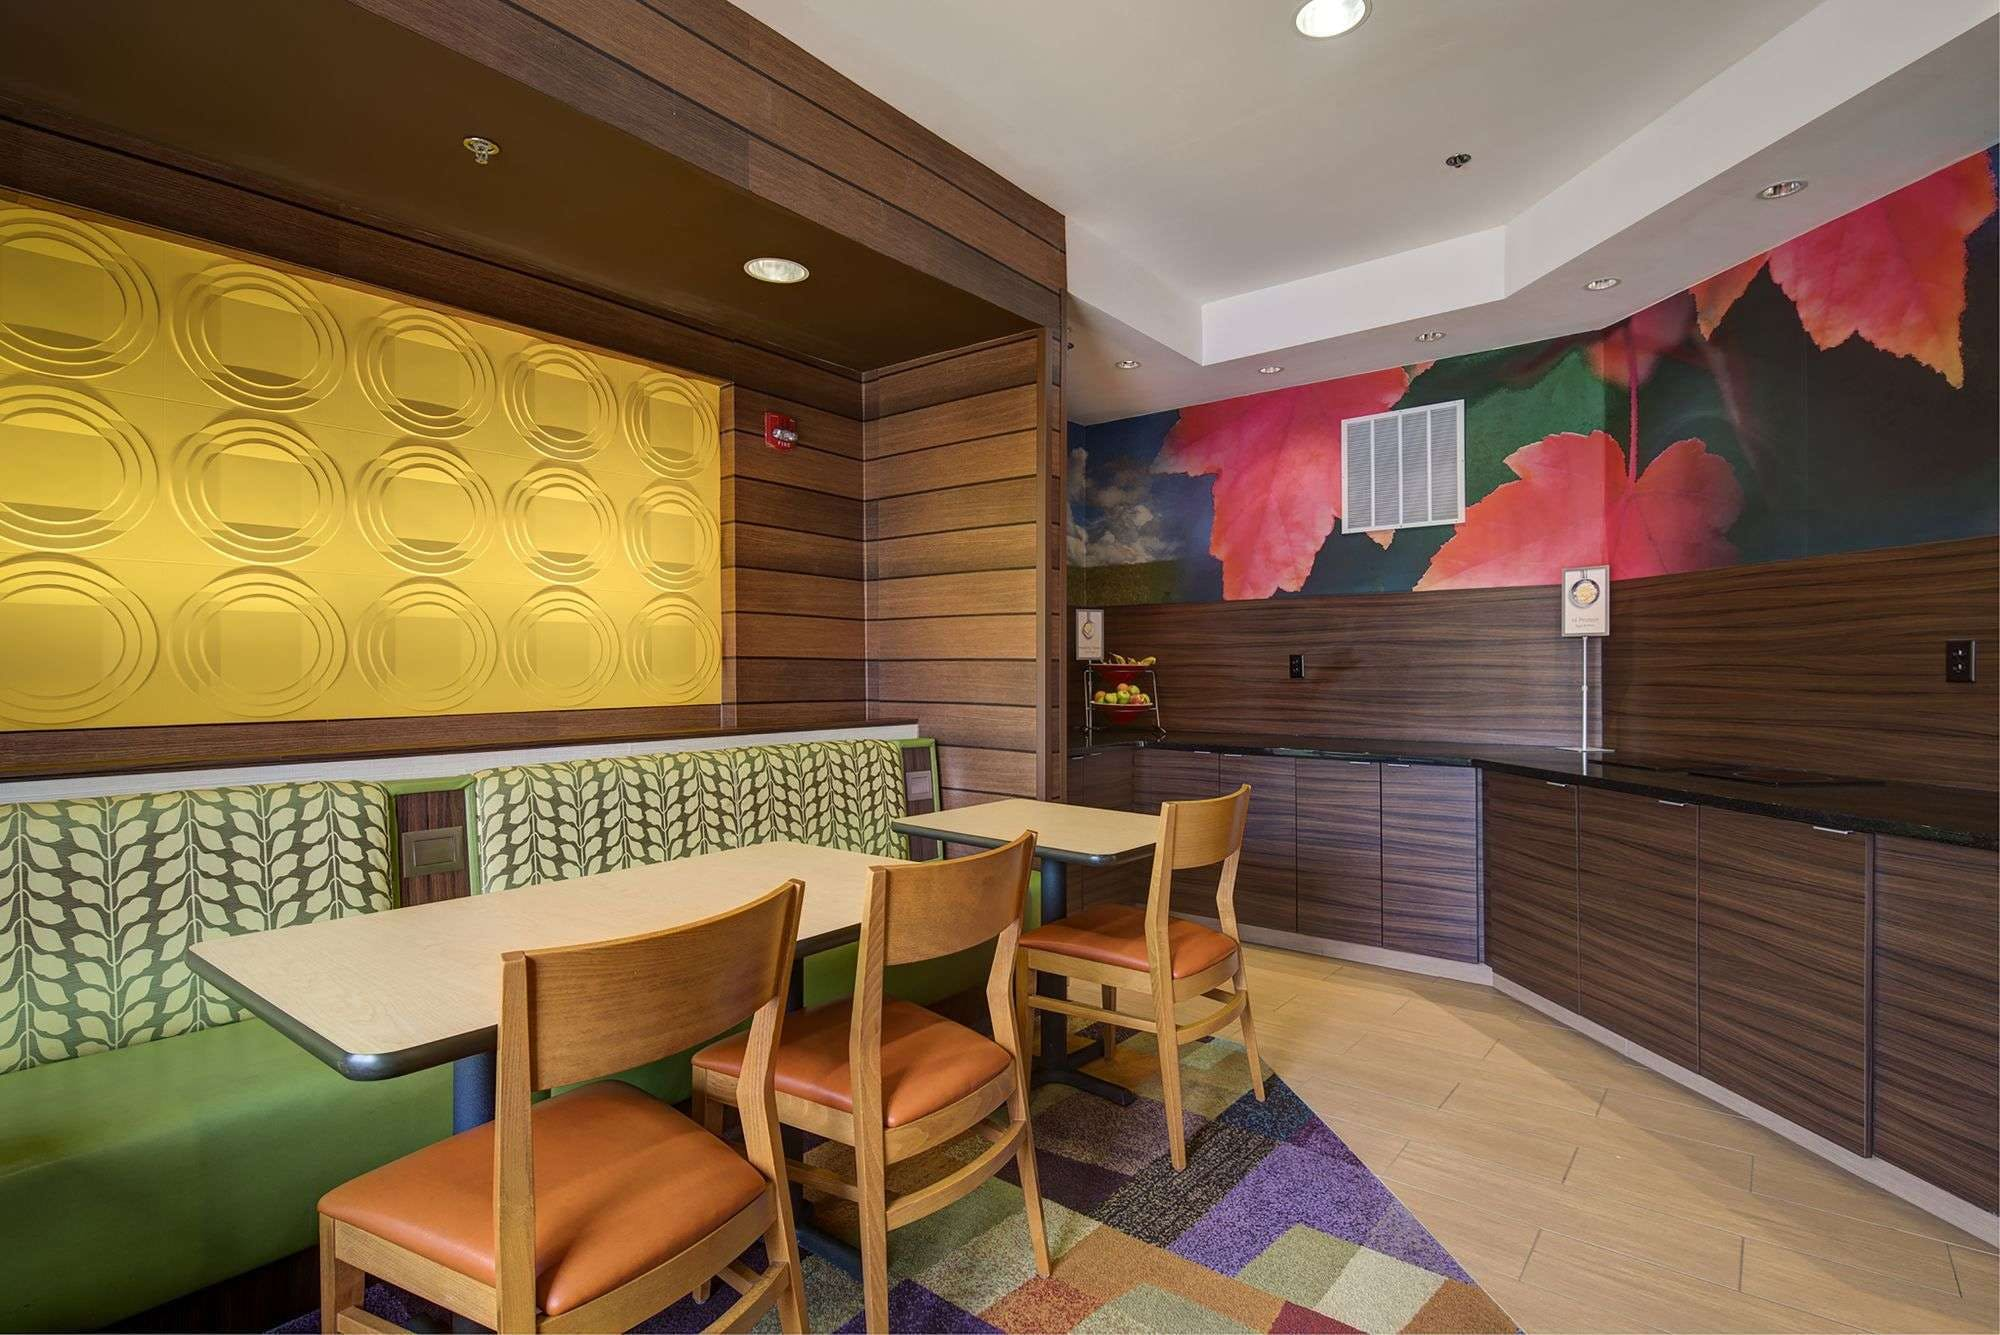 Fairfield Inn by Marriott Green Bay